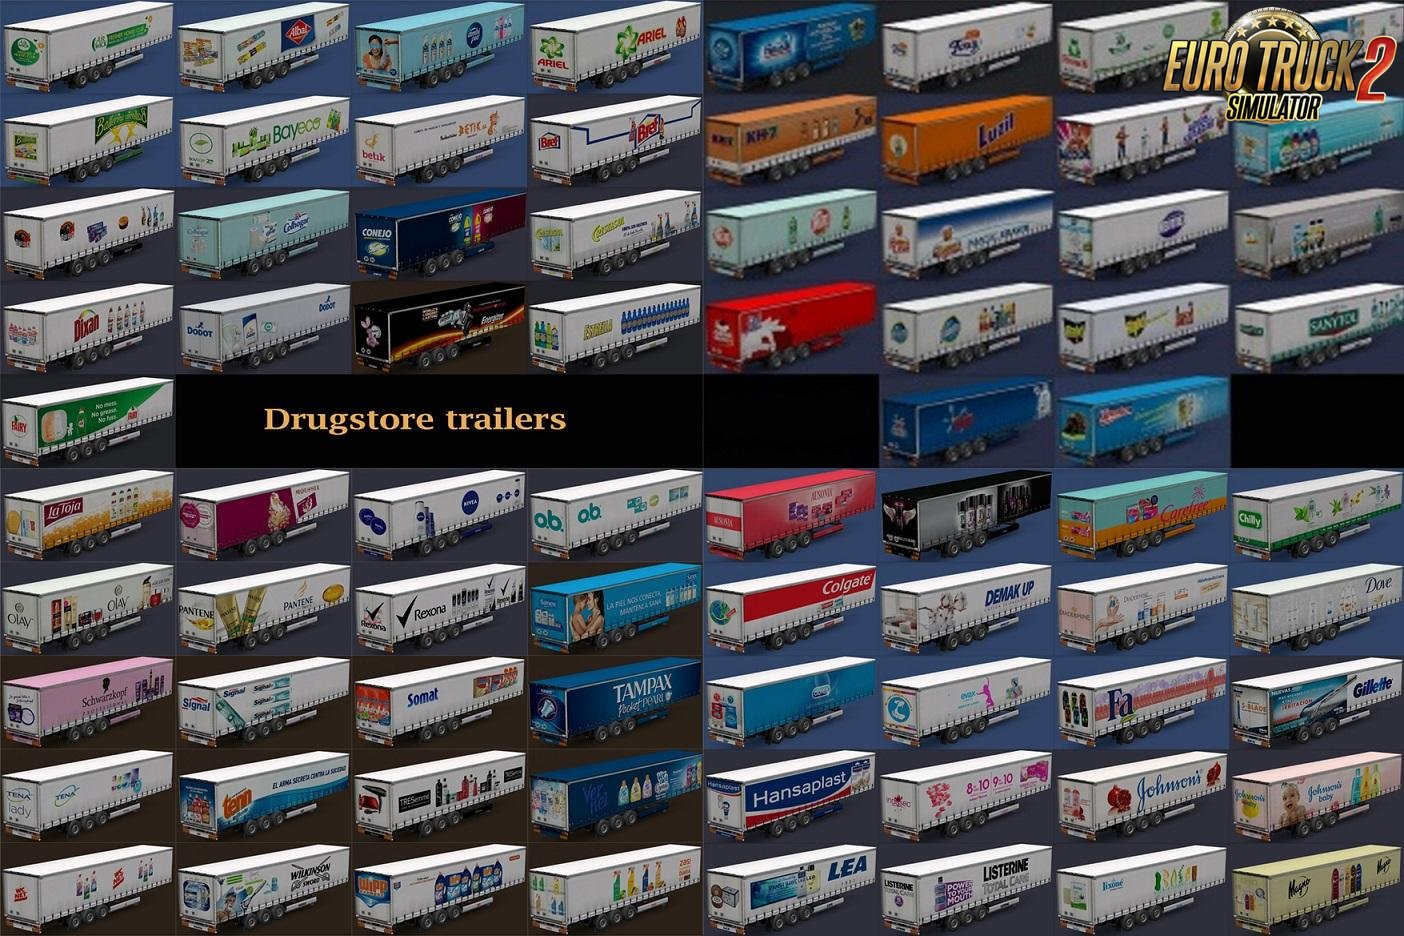 Drugstore Products Trailers Updated by Maryjm